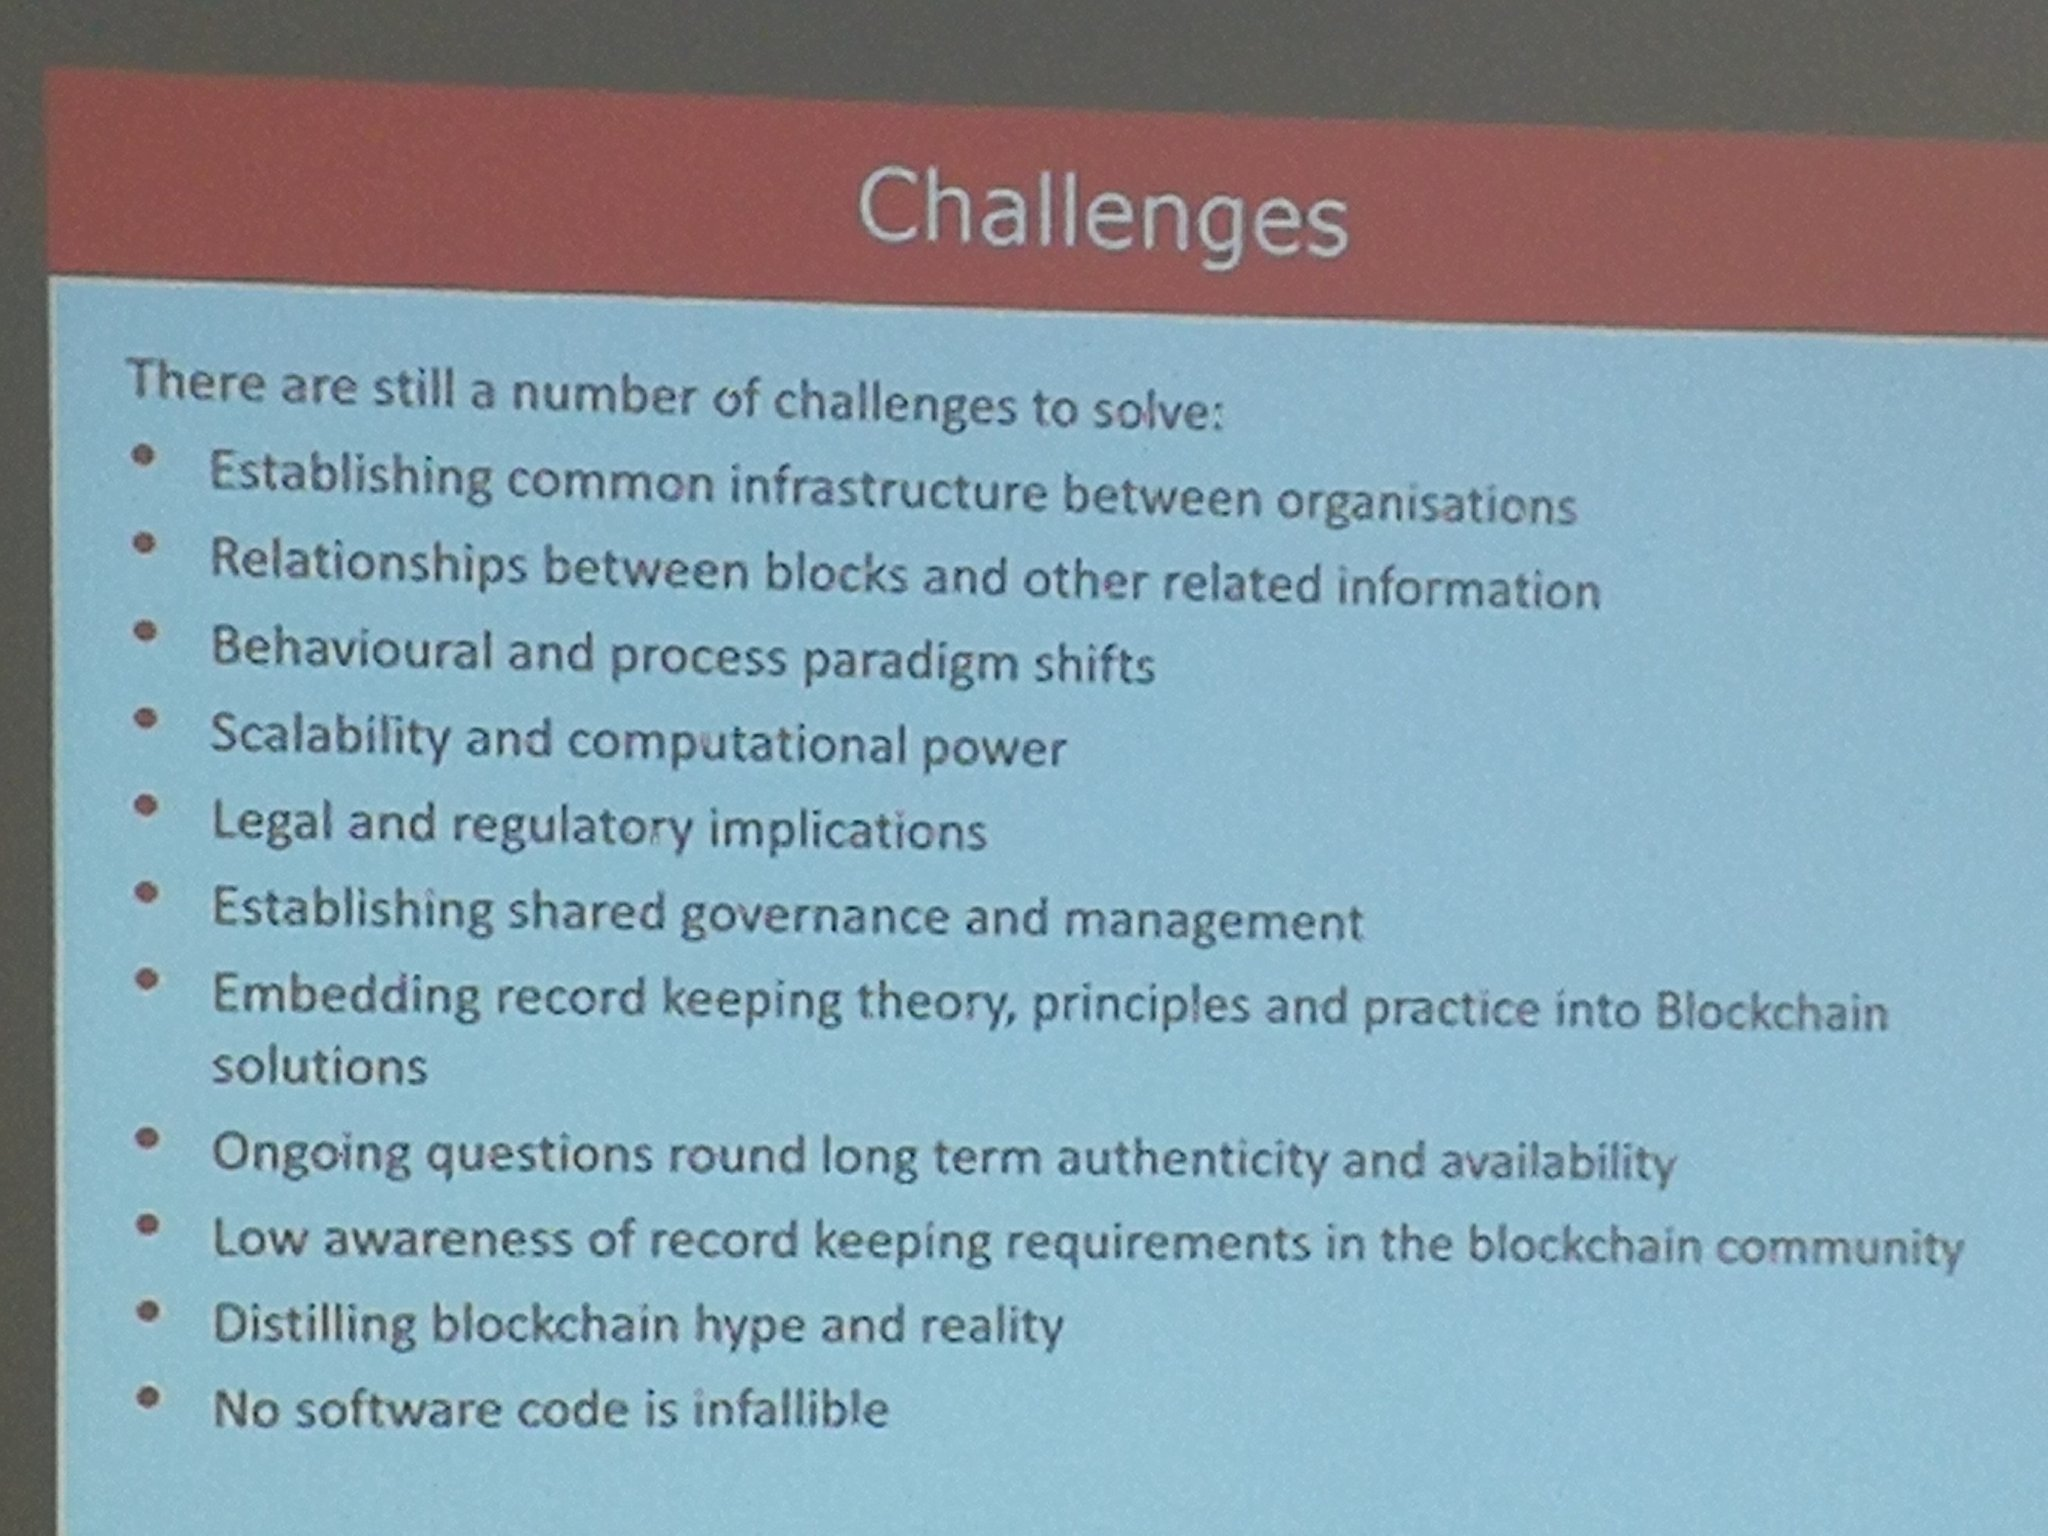 Challenges to consider in using #blockchain for information management #netikx86 https://t.co/MZDKQDXiv6